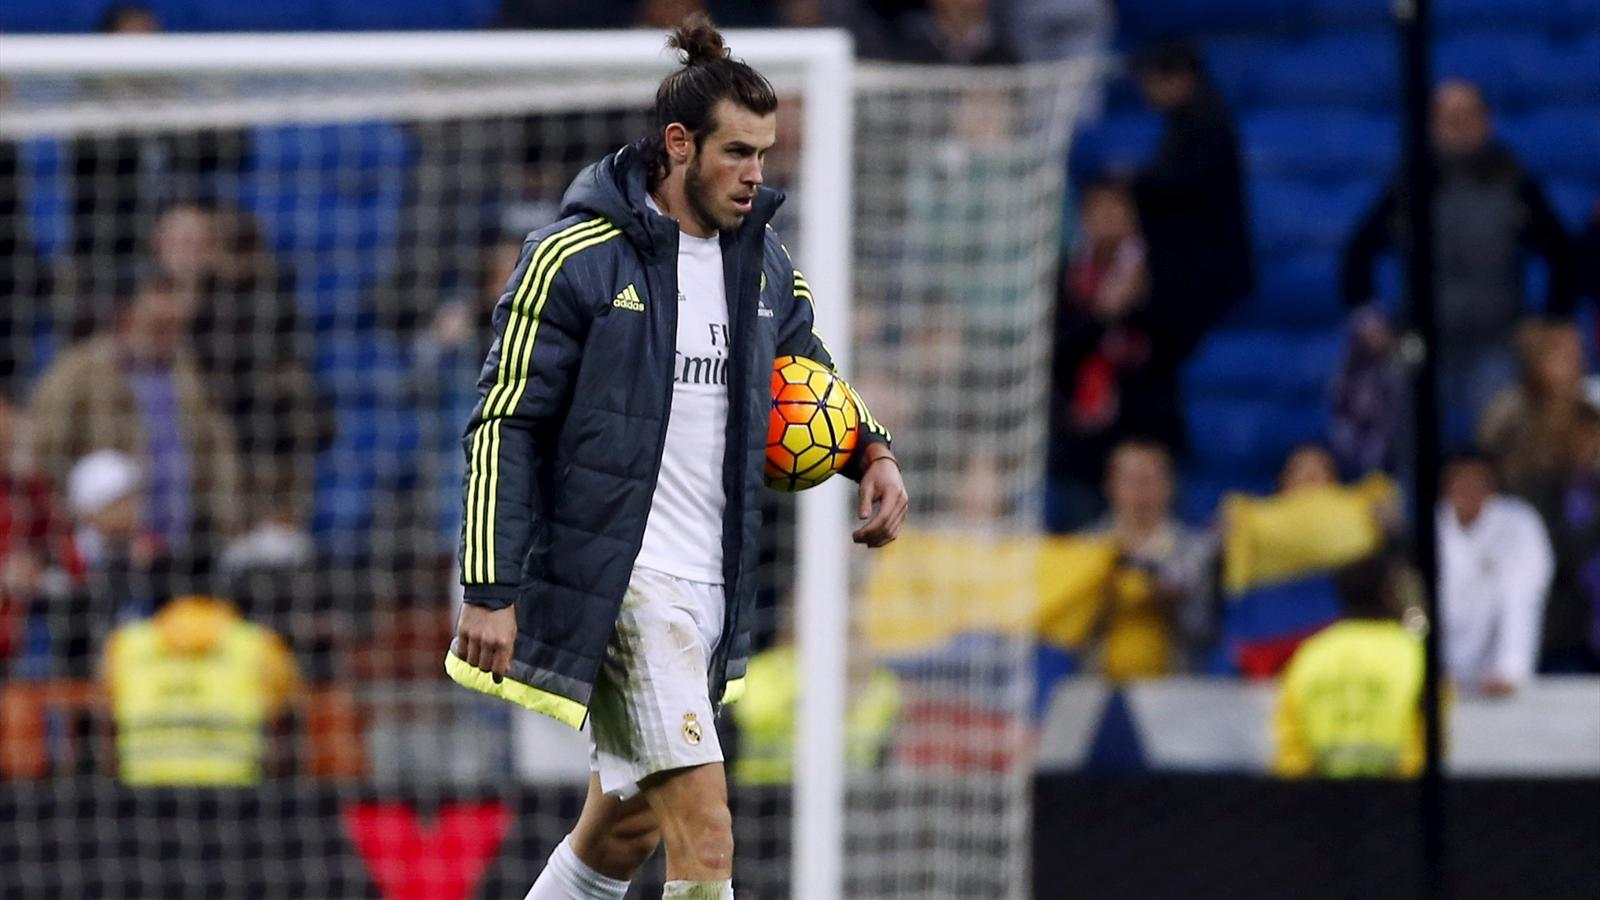 Real Madrid's Gareth Bale holds the ball after the match